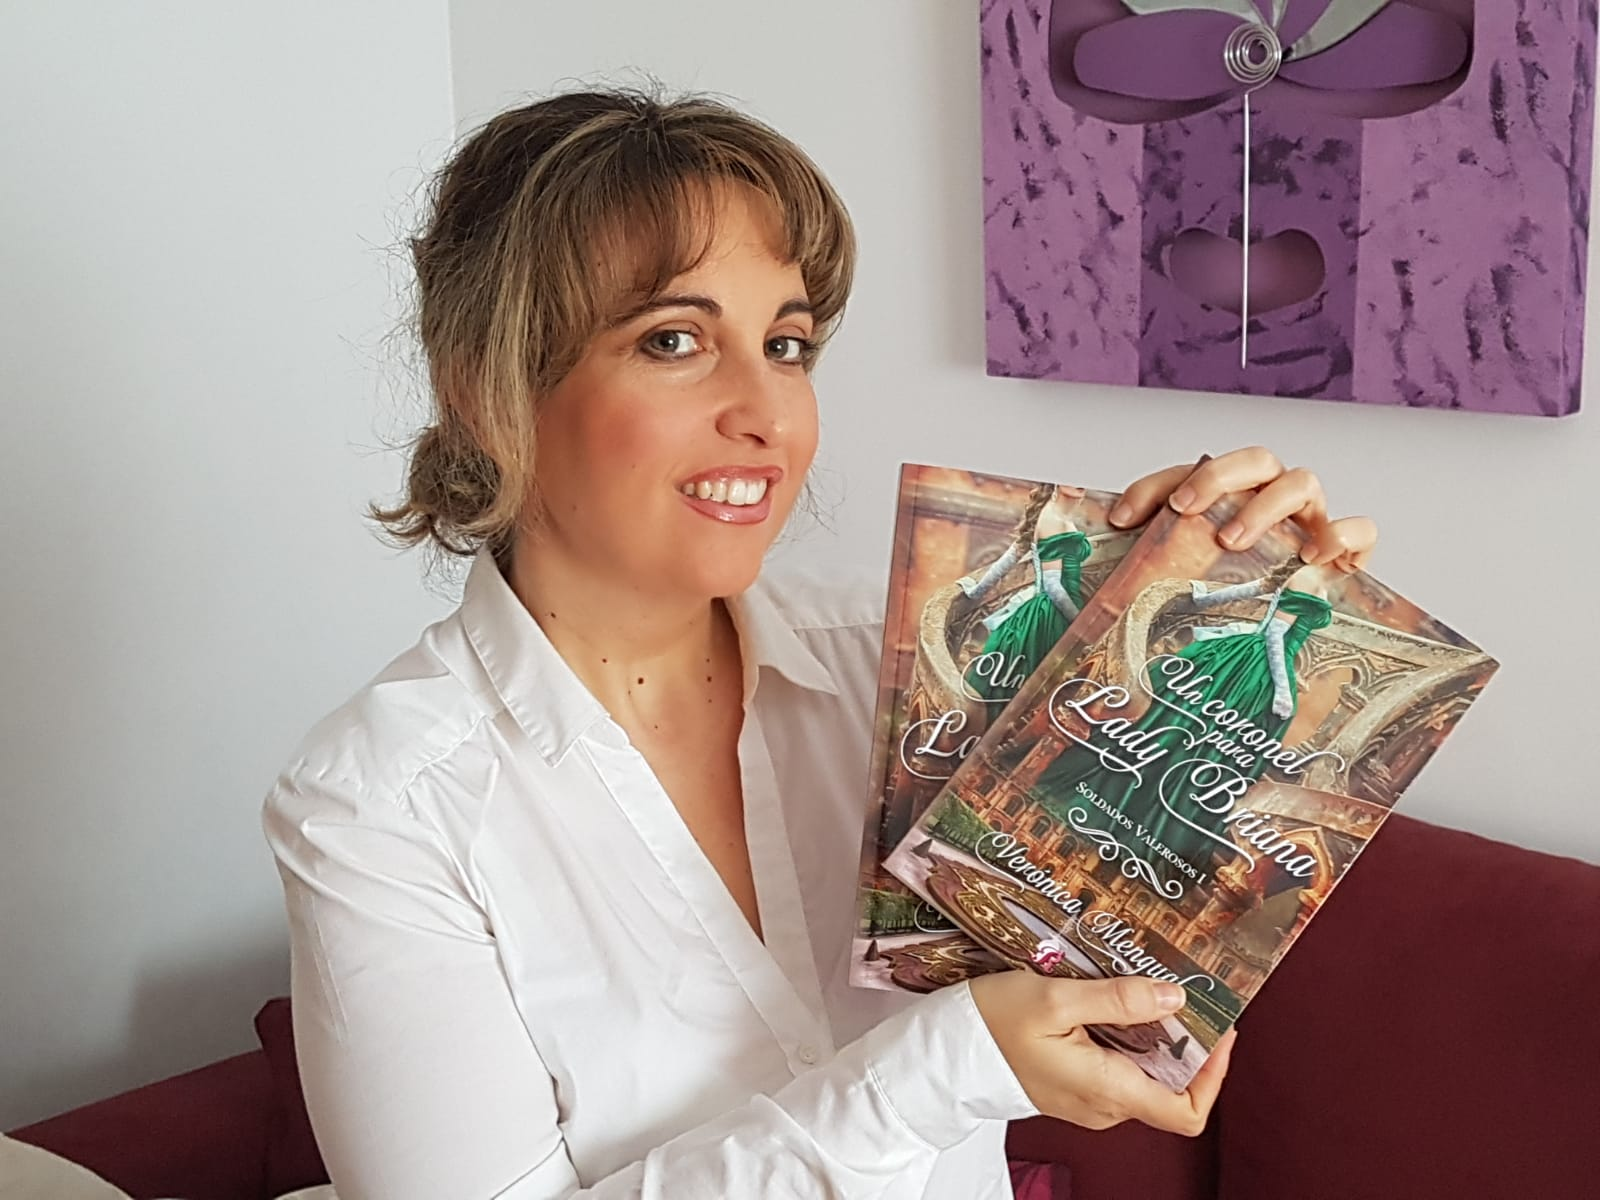 Verónica Mengual presenting one of her published books